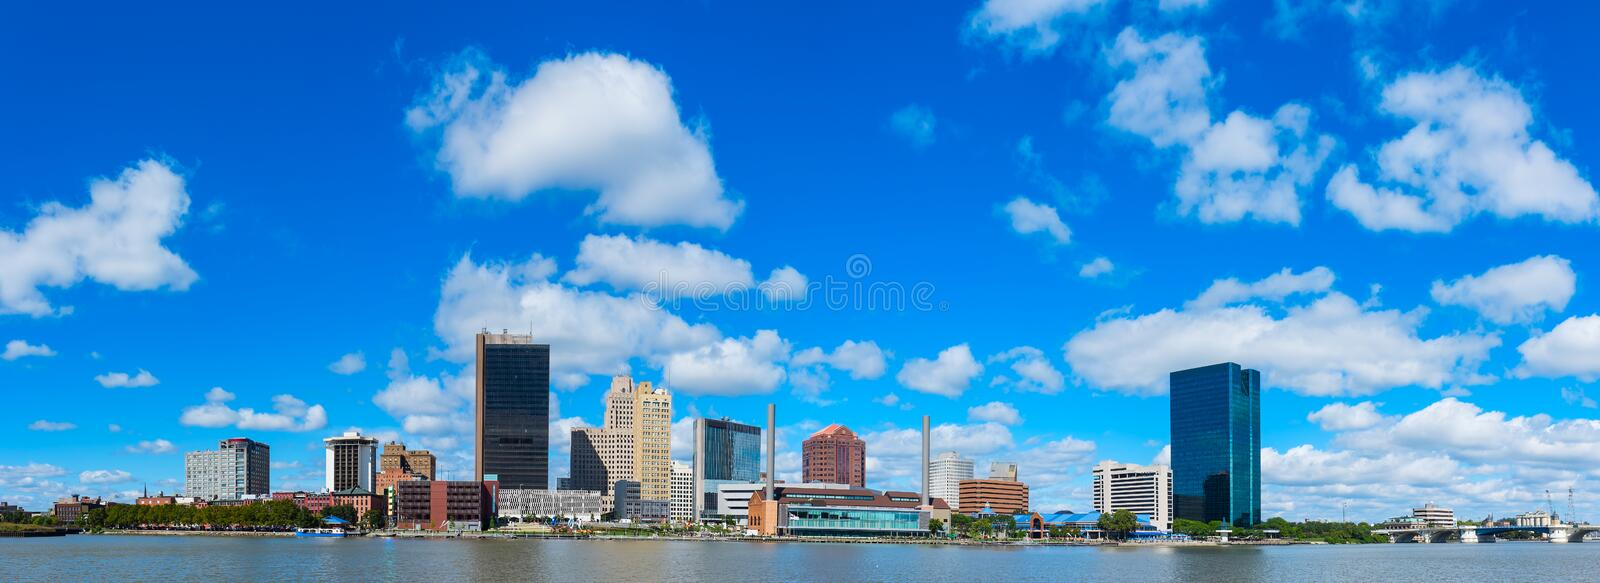 Toledo. Panoramic view of Toledo downtown skyline with blue sky and white clouds, Ohio stock image